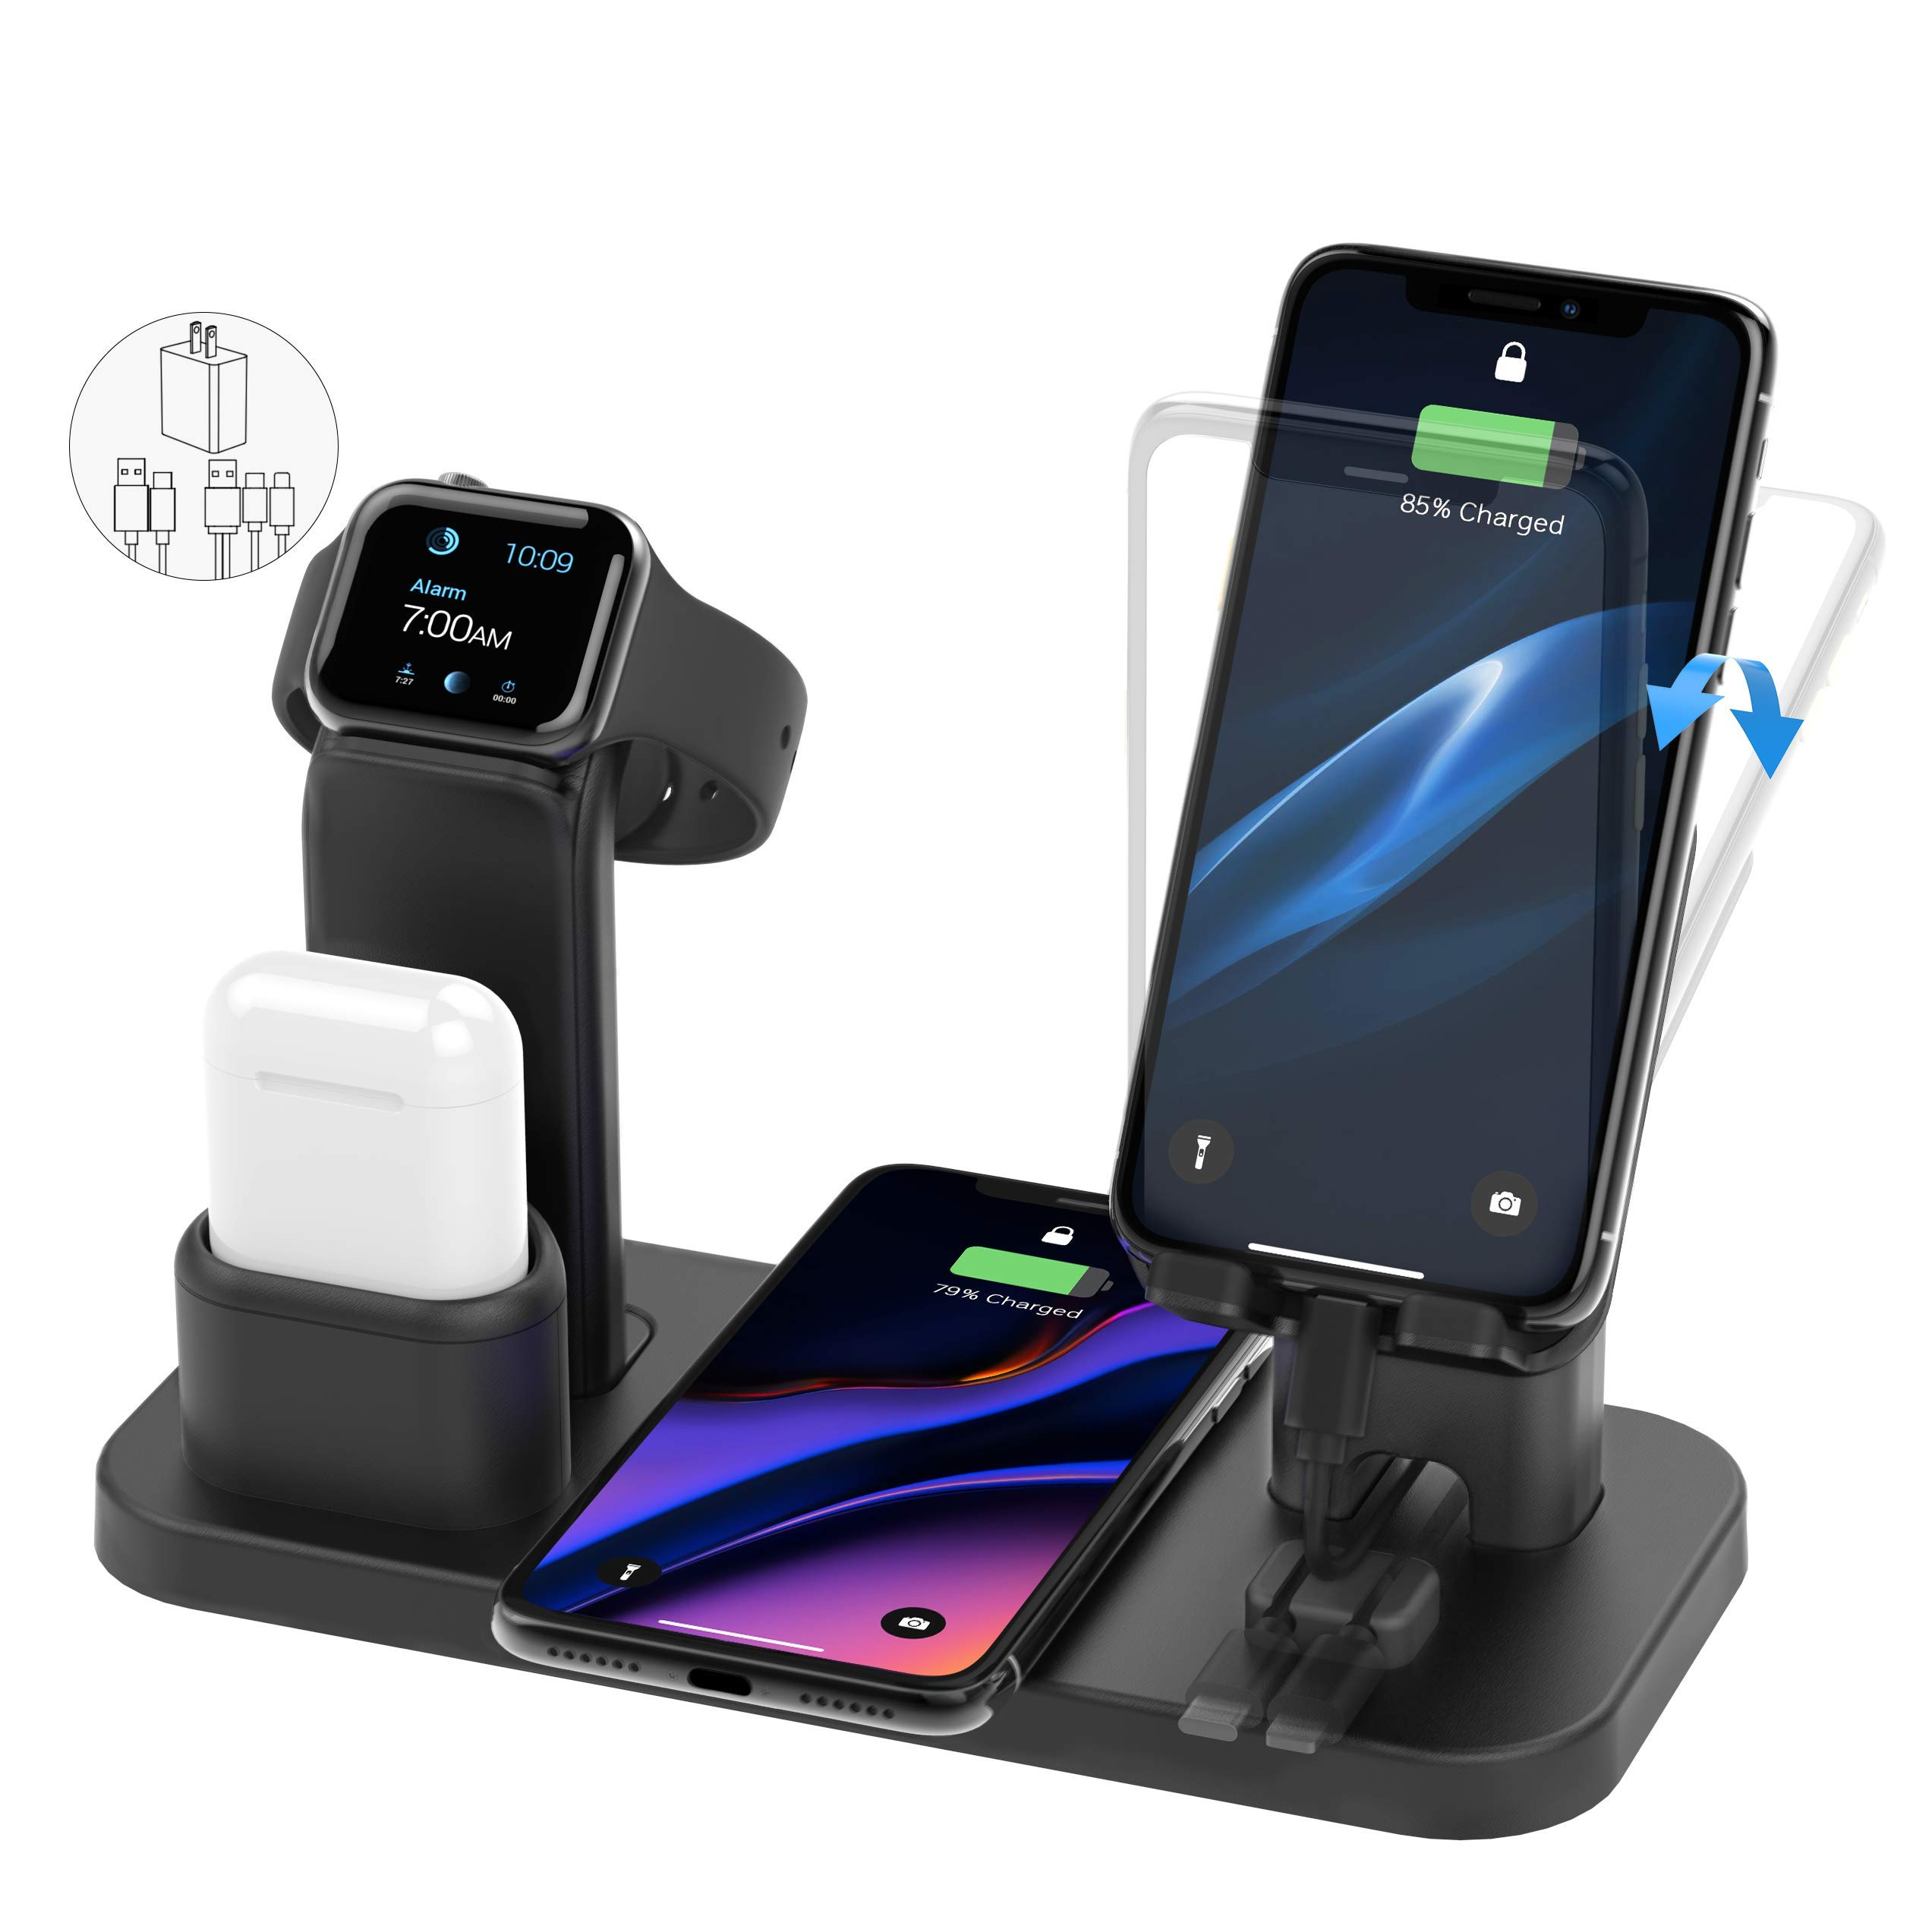 Wireless Charger Stand, CEREECOO 4 in 1 Wireless Charging Station Dock Compatible with iPhone 11/11pro/Xr/Xs/X/Max/8/8Plus/7/6/6s/5 Apple Watch5/4/3 AirPods(Only iWatch Charger Needed) by CEREECOO